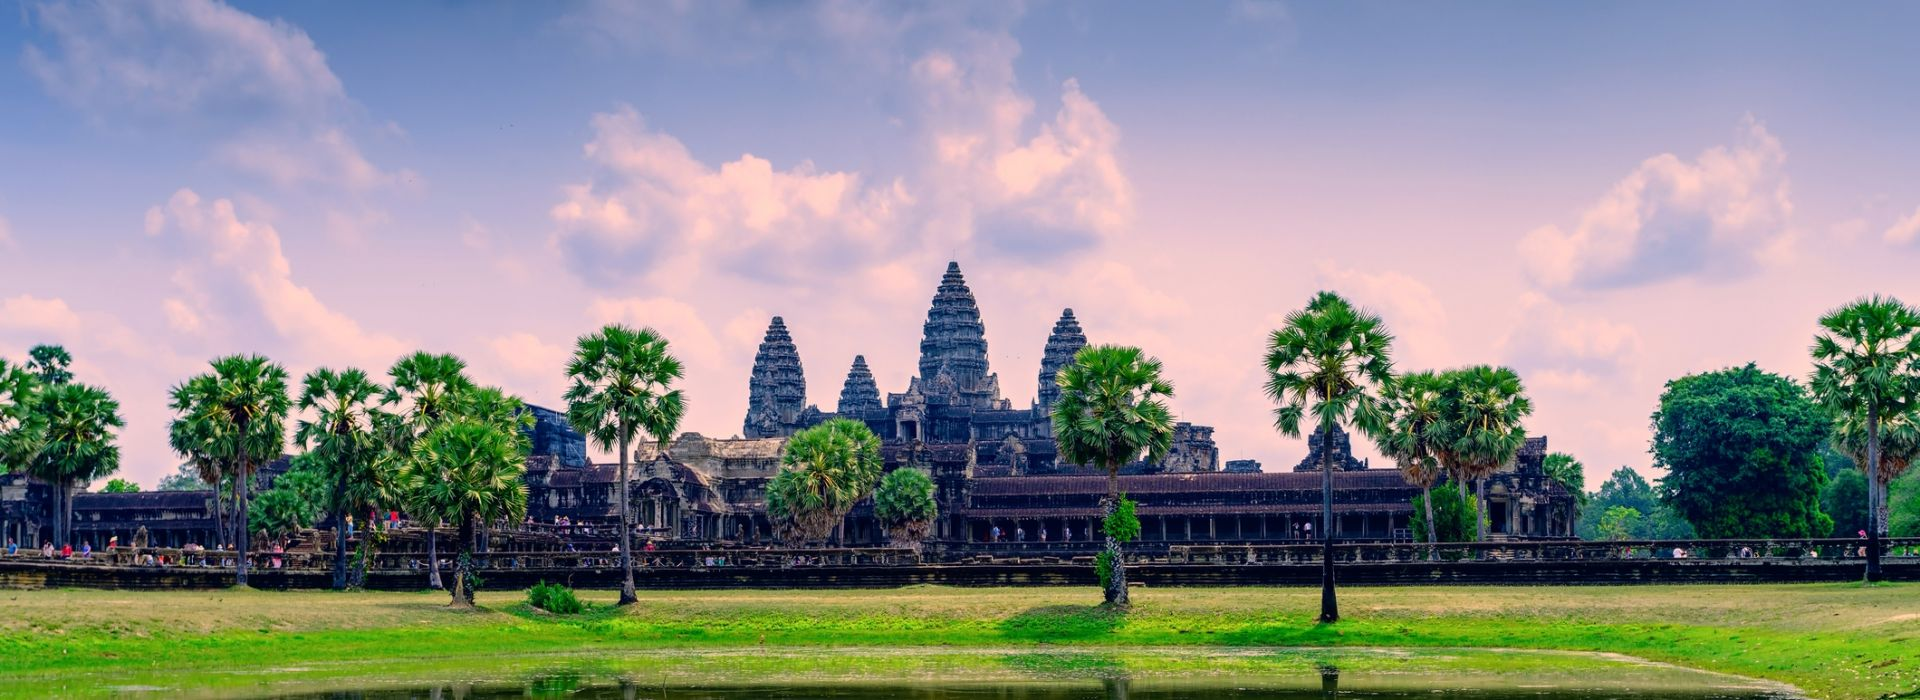 Adventure and sport activities Tours in Angkor Wat